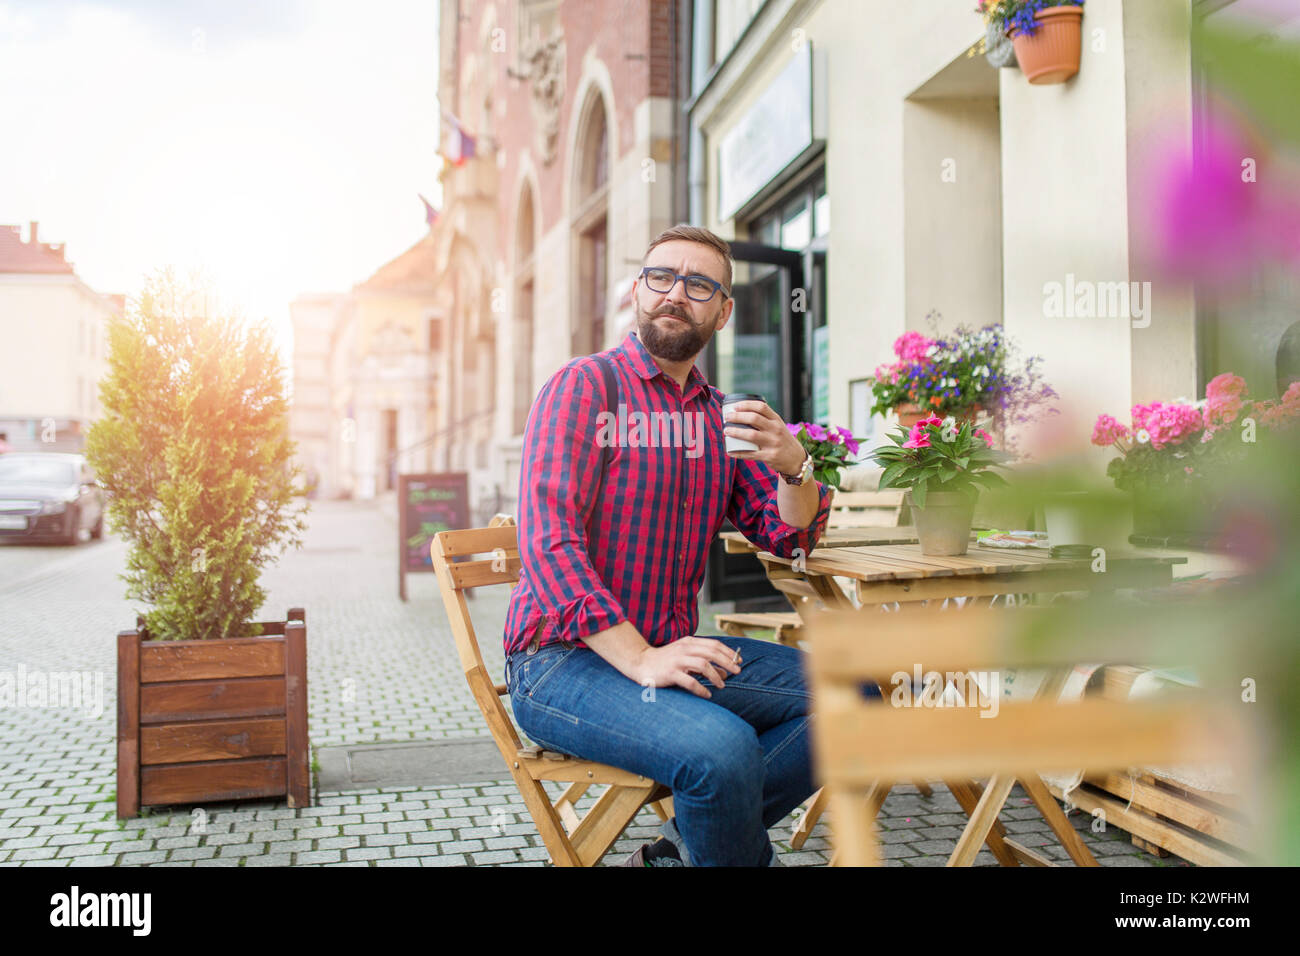 Man sitting in cafe Garden et de boire du café à emporter Photo Stock